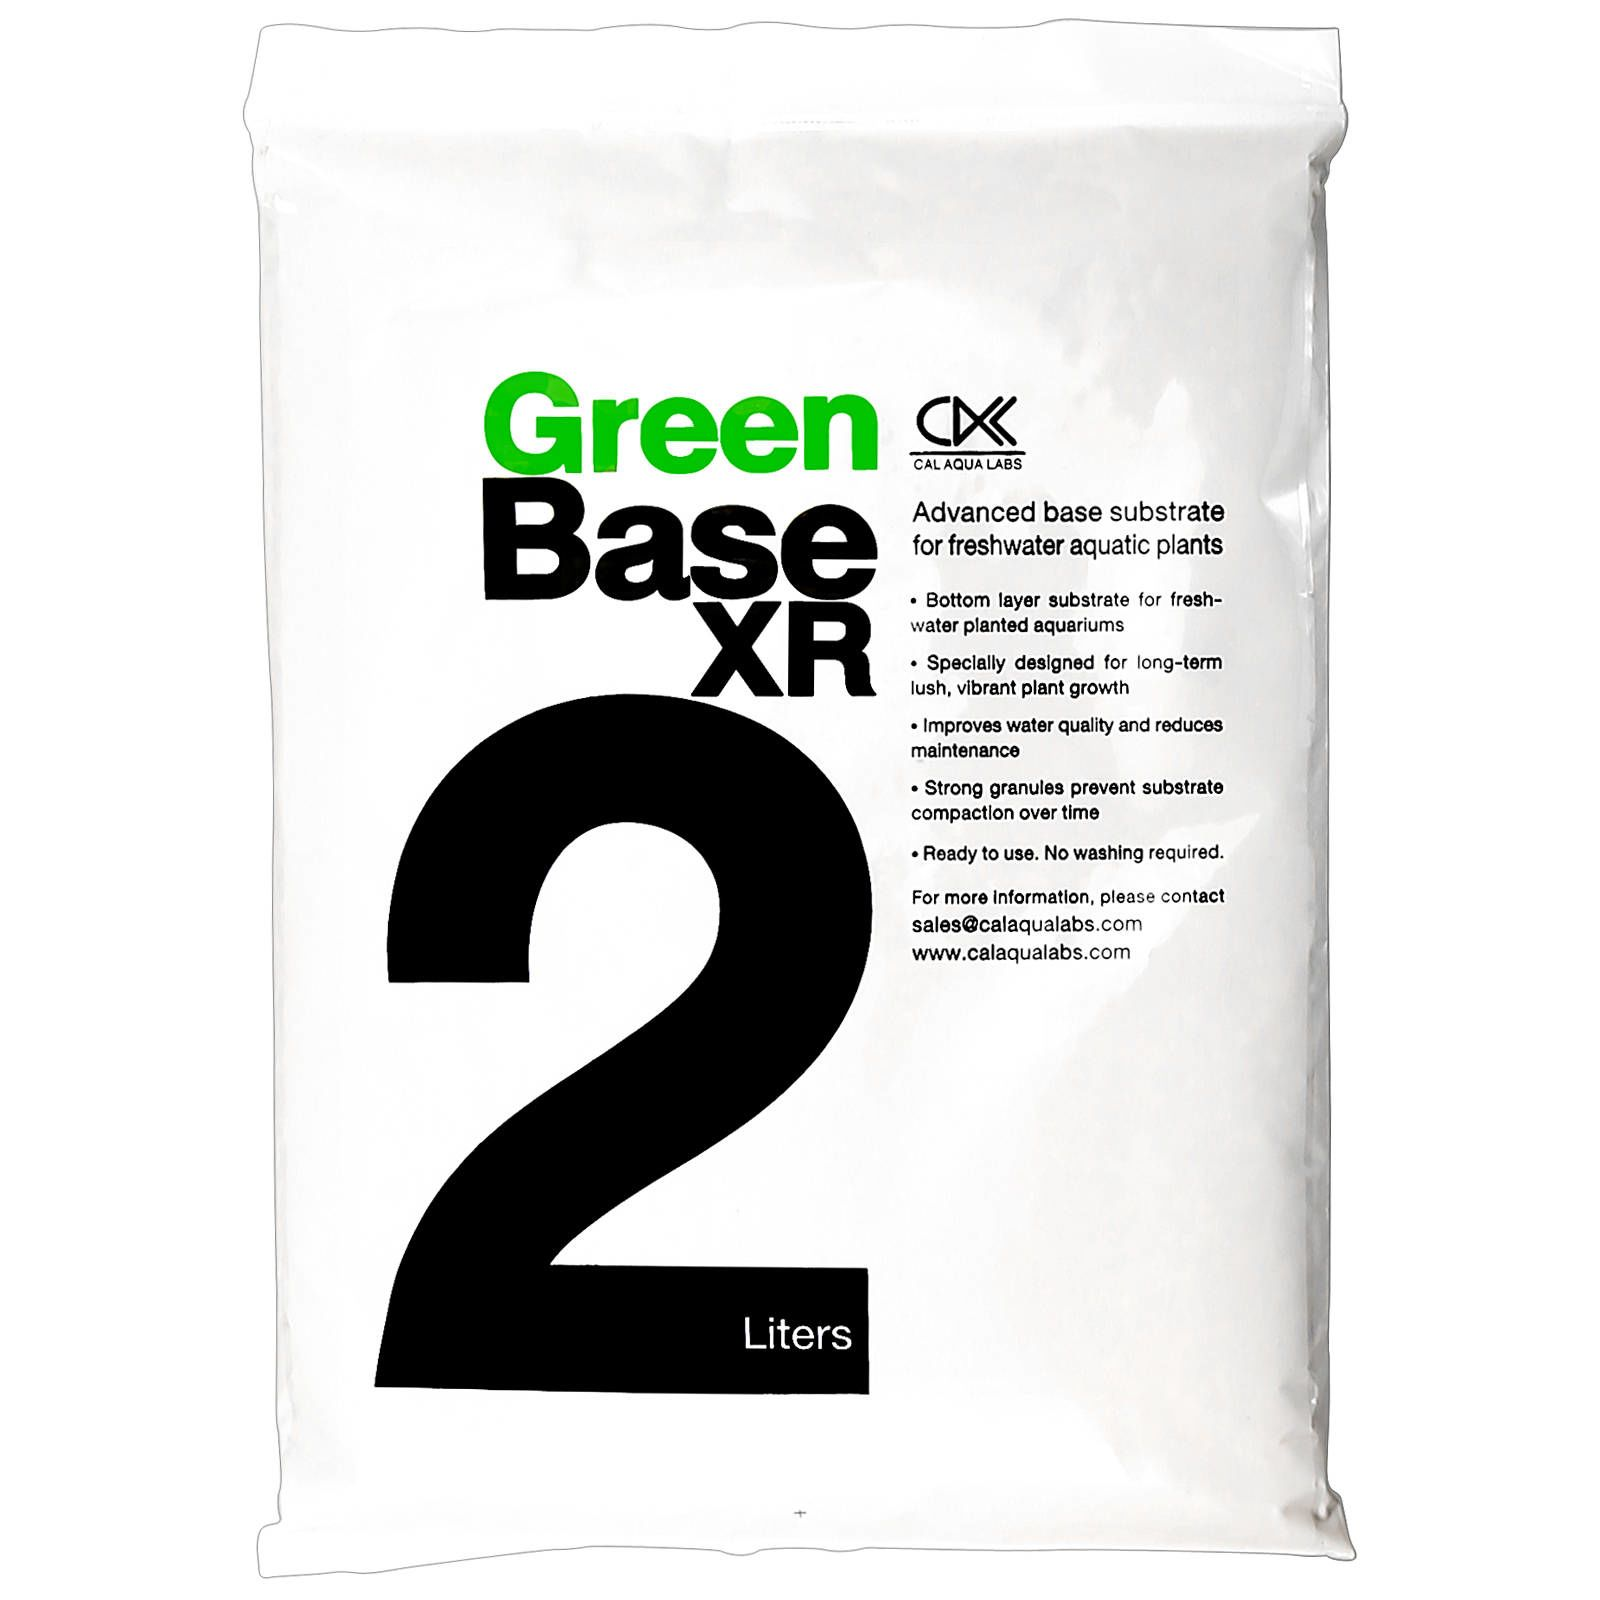 Cal Aqua Labs - Green Base XR